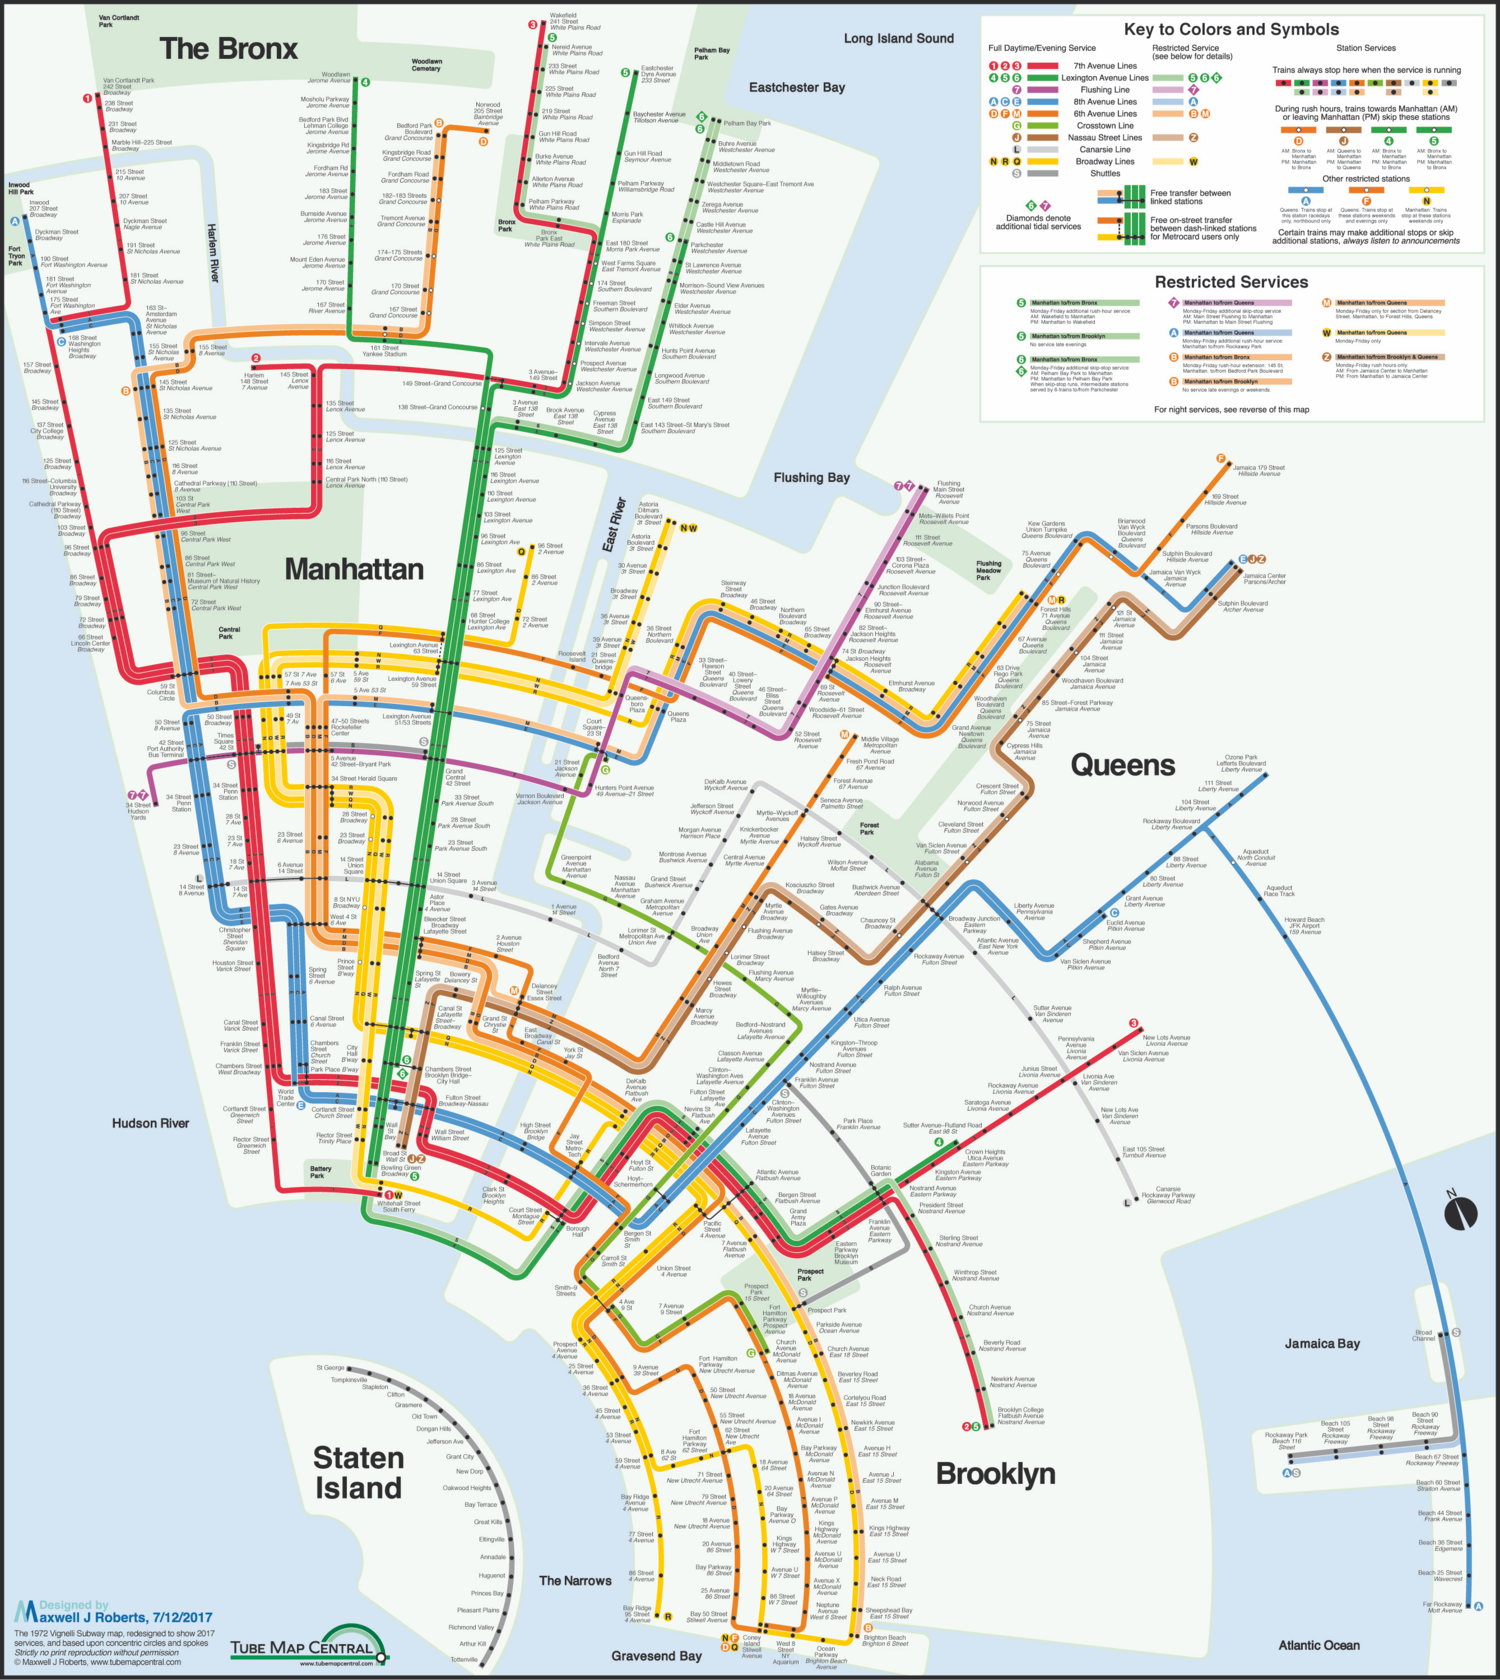 New York Metro Map Check Out This Vignelli Inspired New York City Subway Map Made of  New York Metro Map